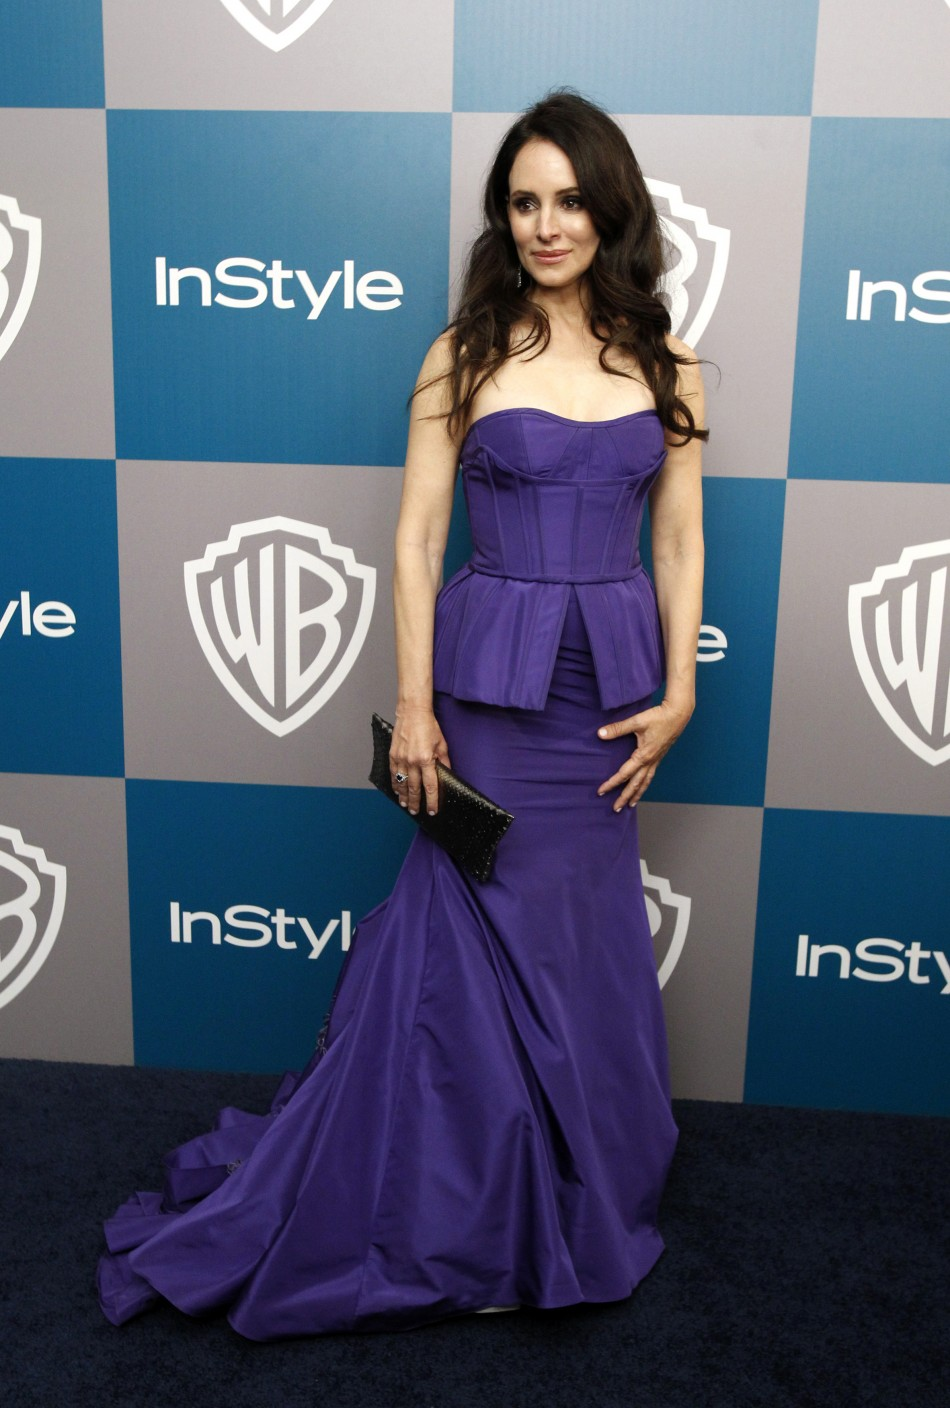 Madeleine Stowe was voted fifth most beautiful woman of 2012 by People magazine